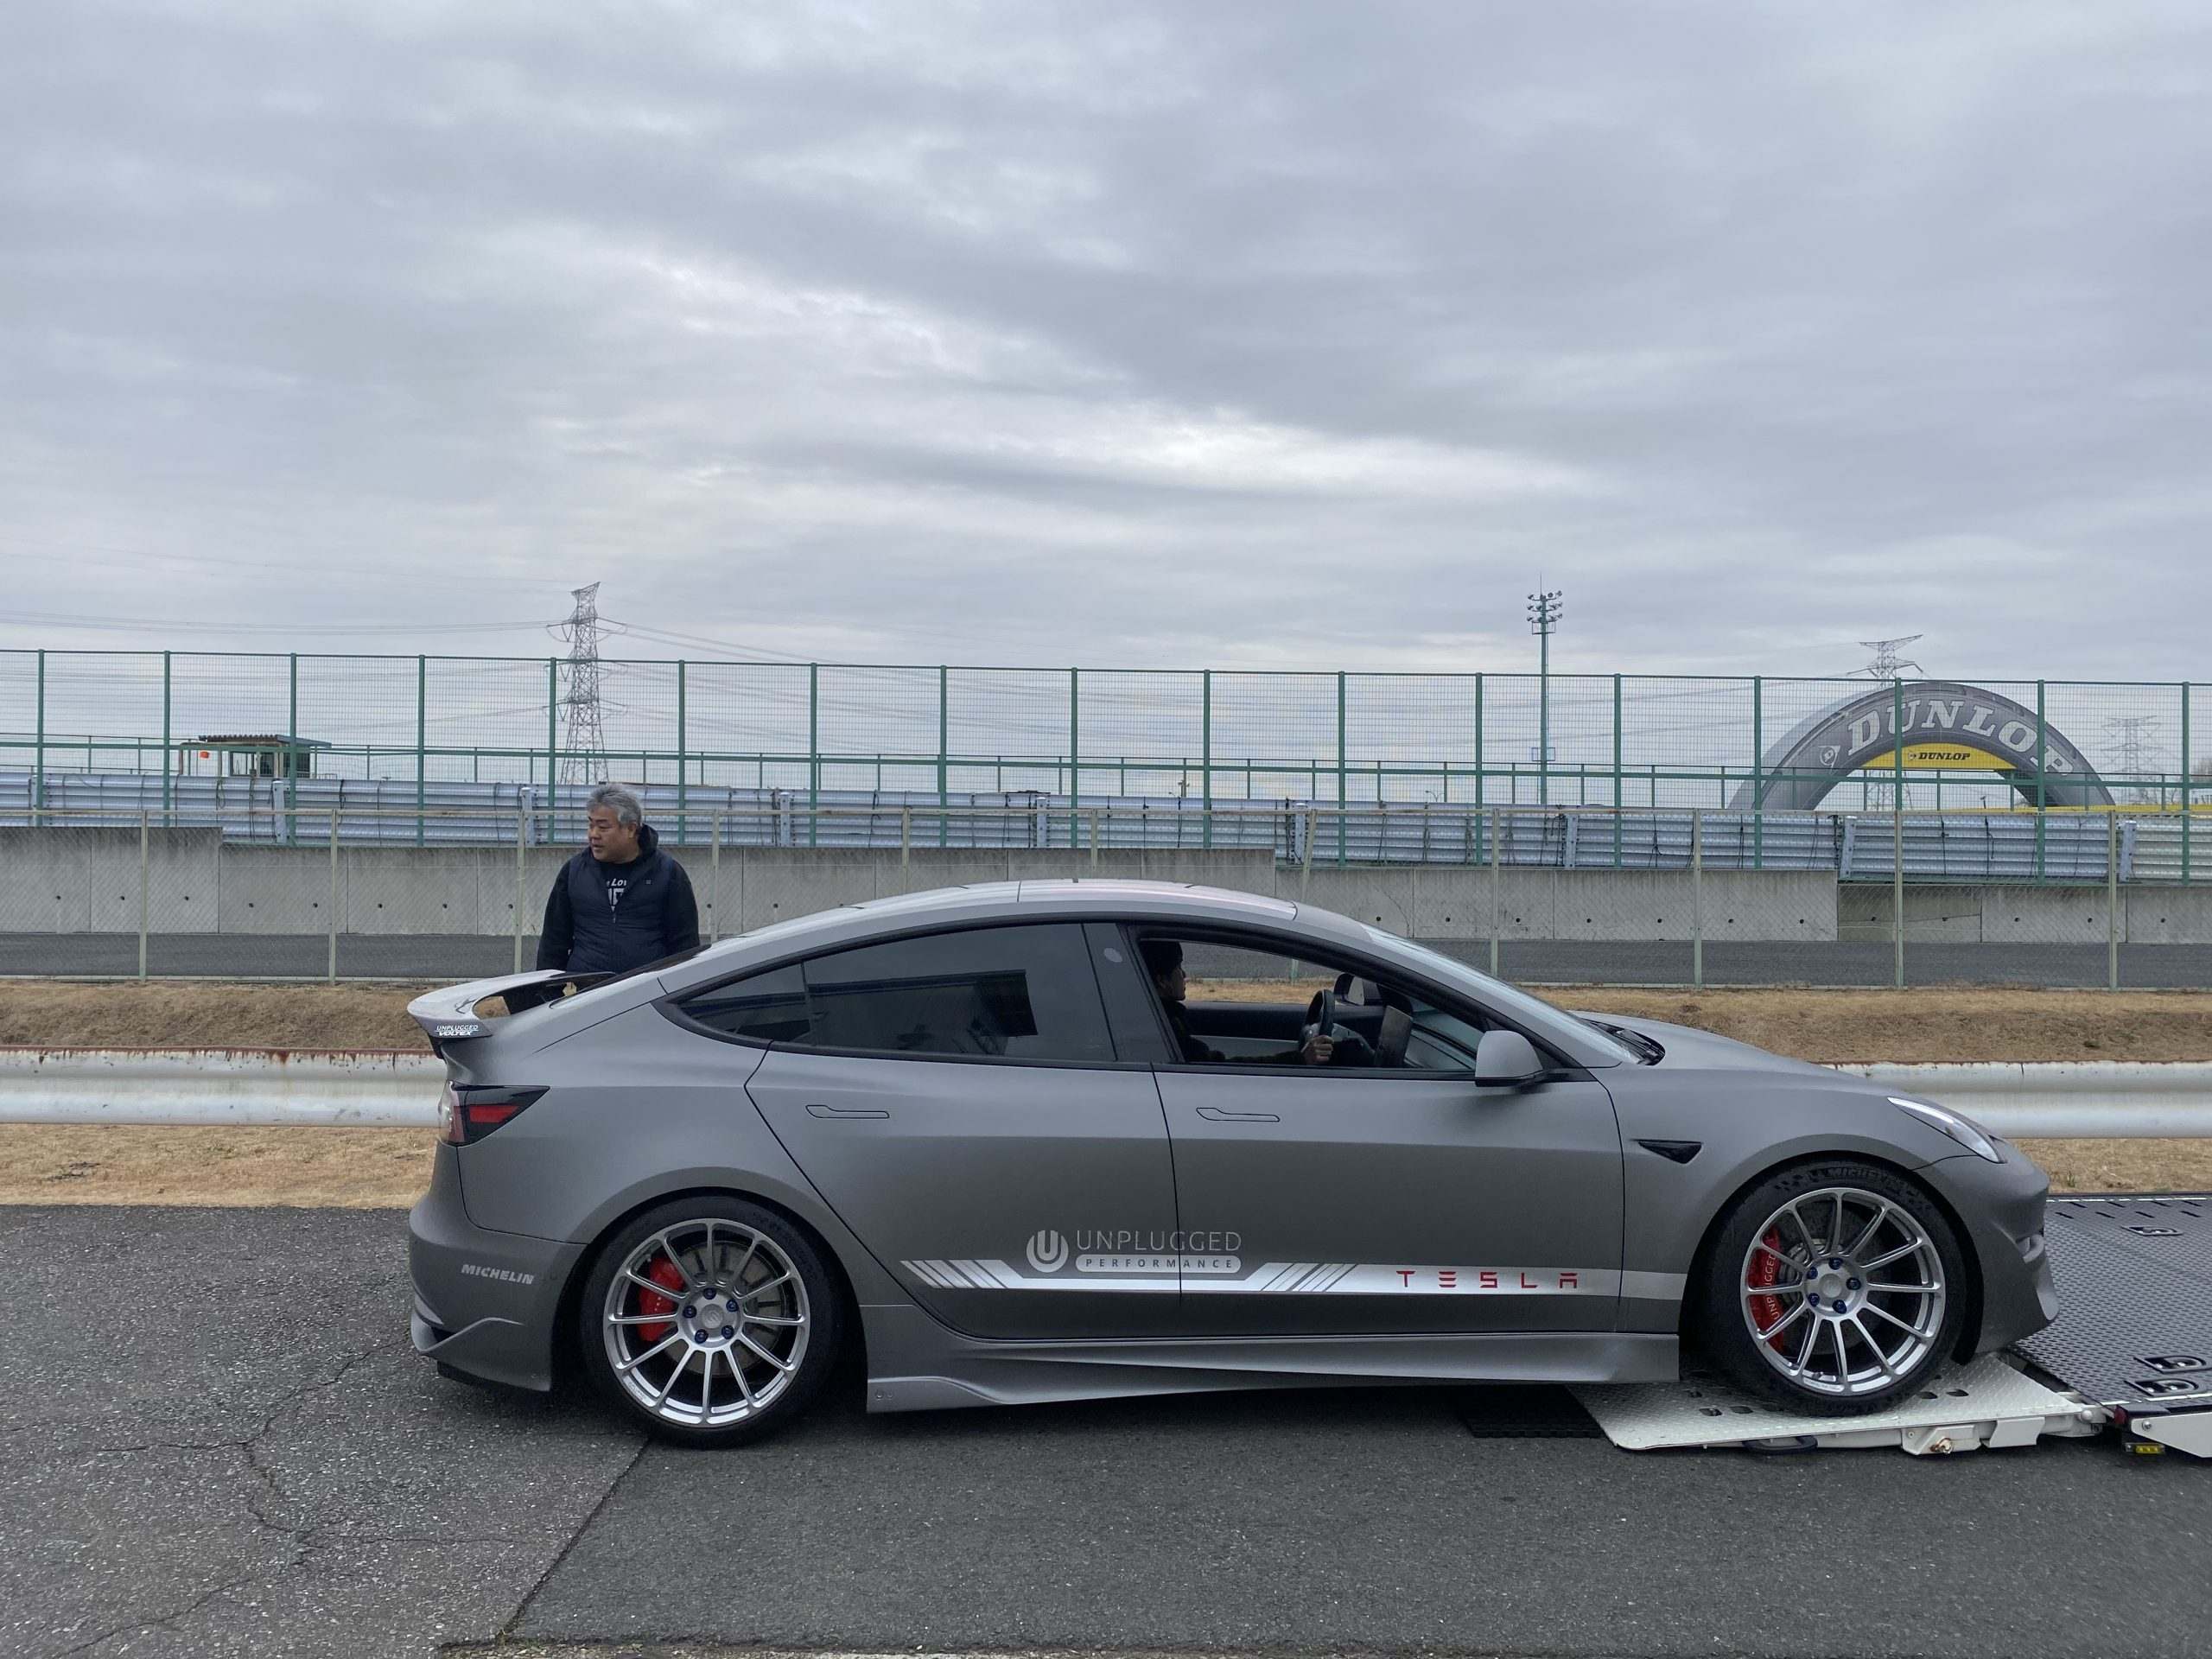 Tesla Model 3 Ascension-R at Tsukuba Circuit, Japan (Source: Unplugged Performance)